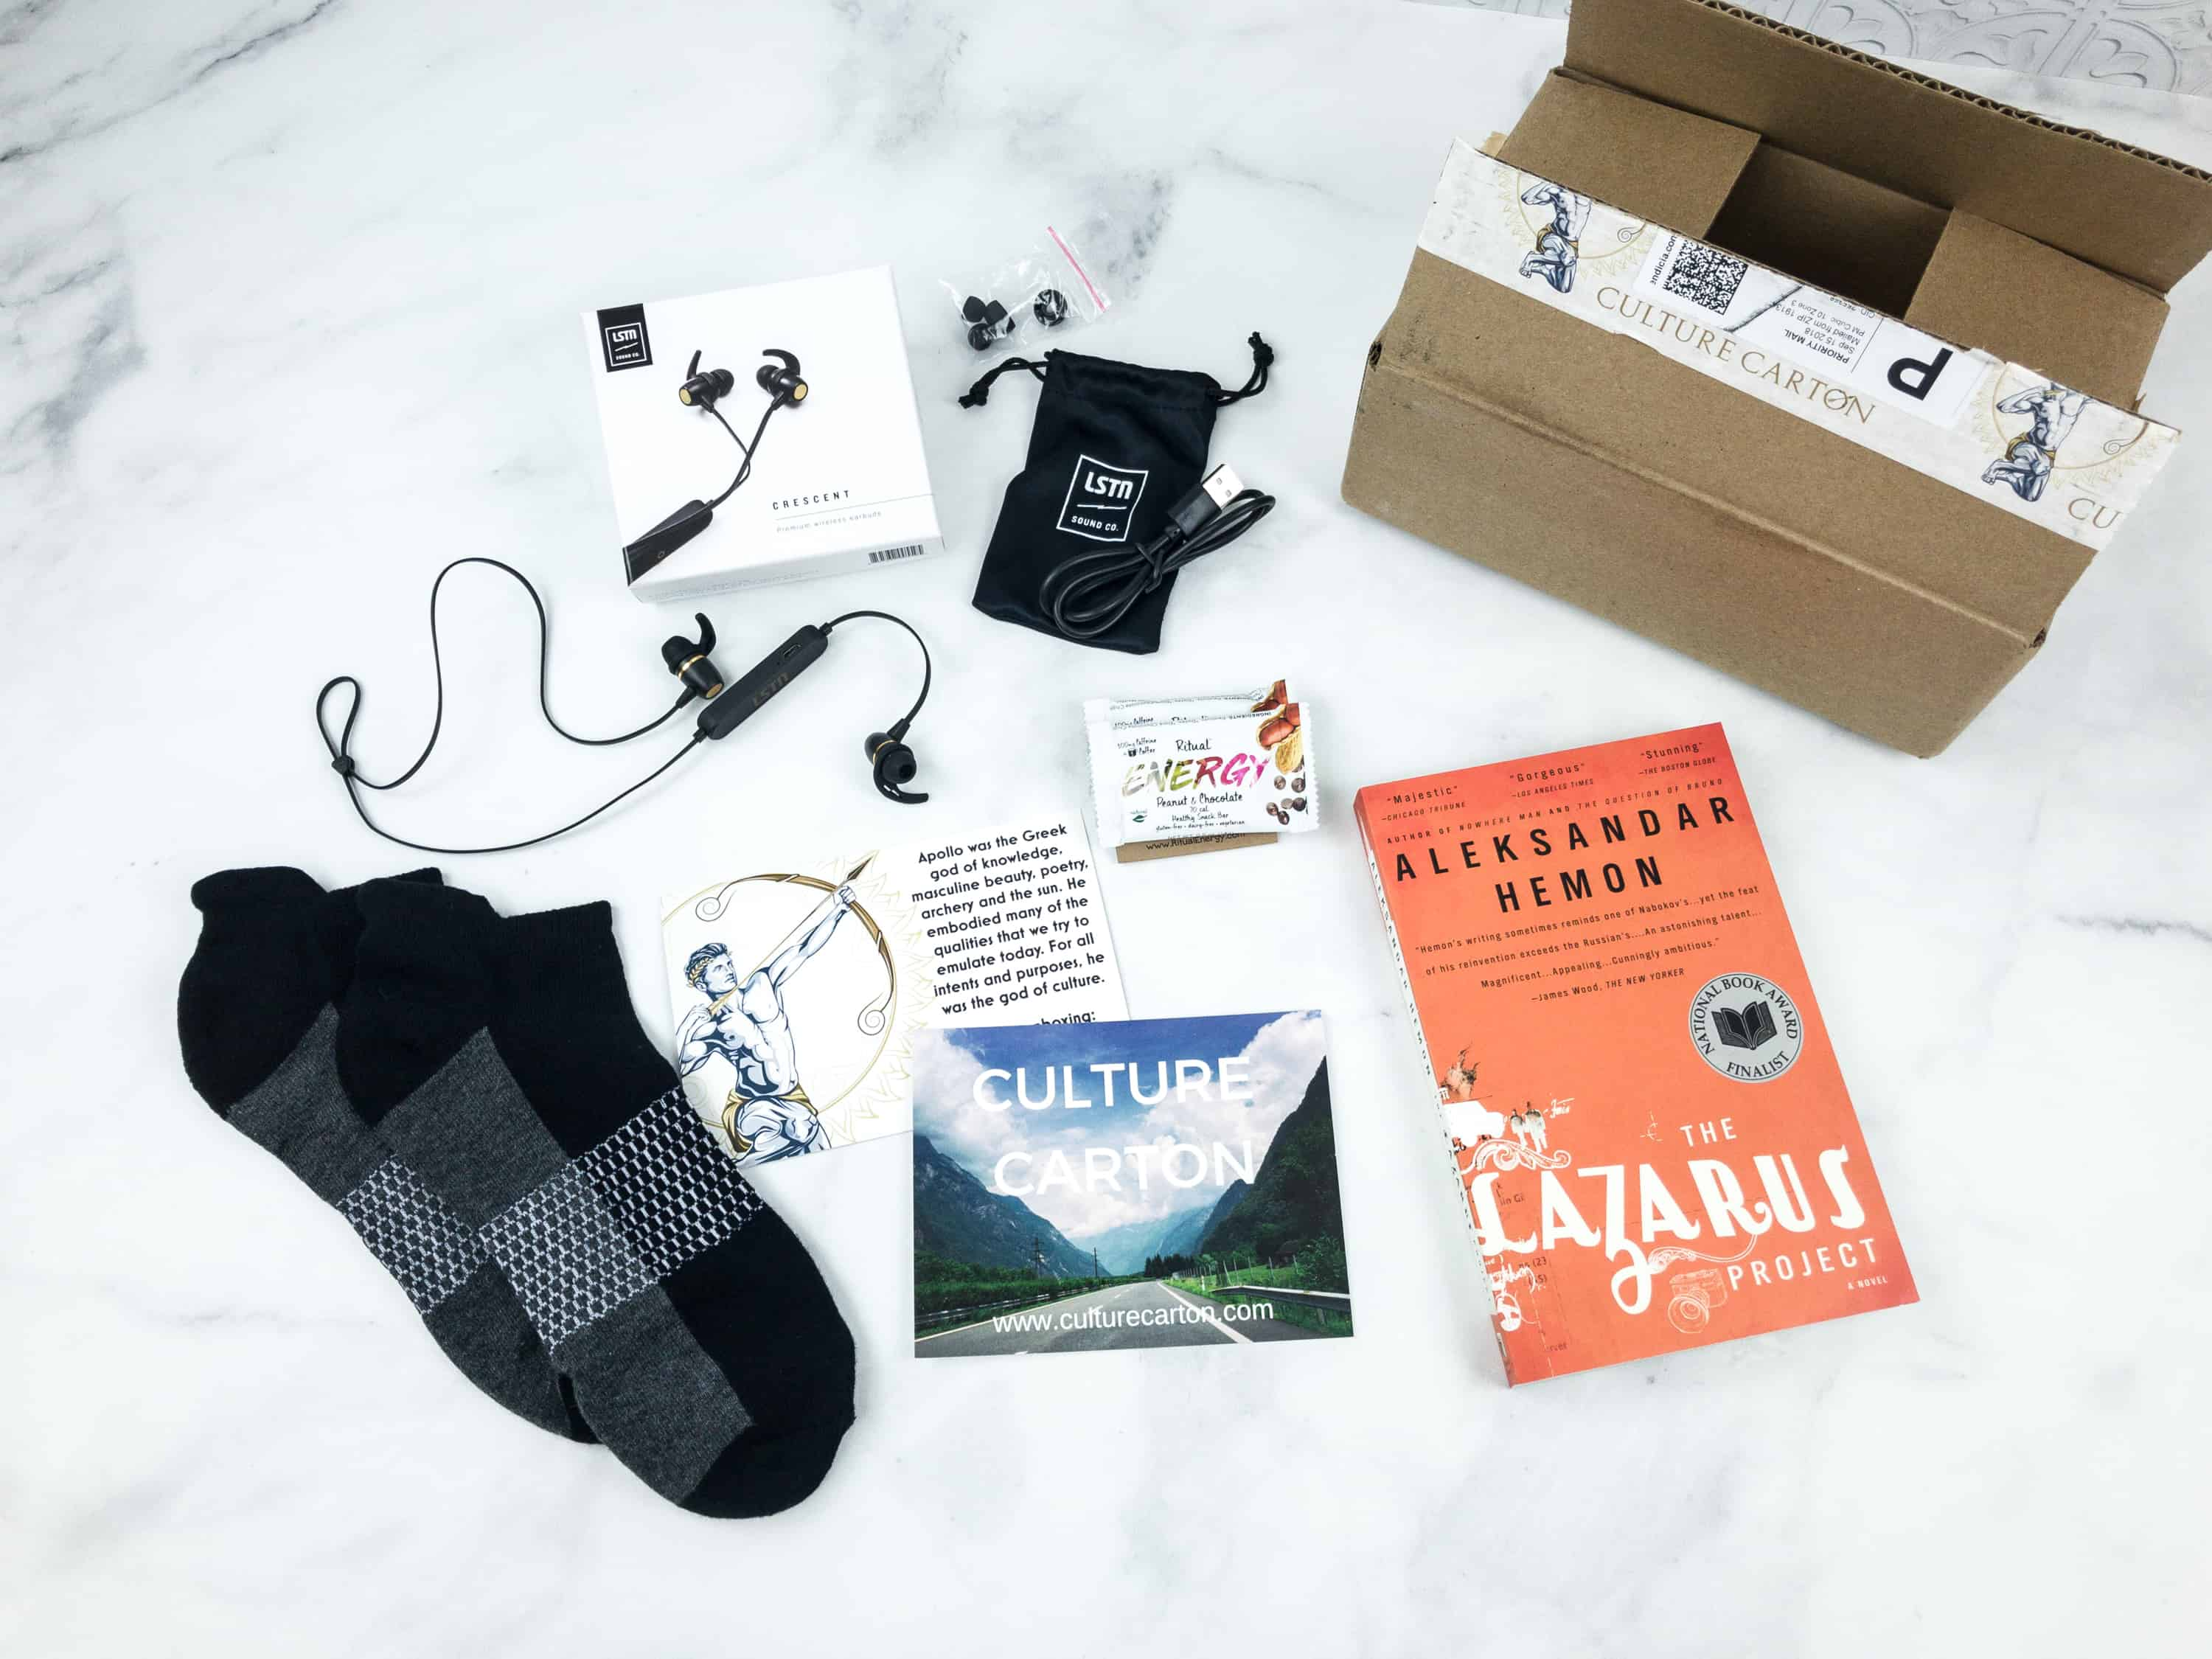 Culture Carton September 2018 Subscription Box Review + Coupon